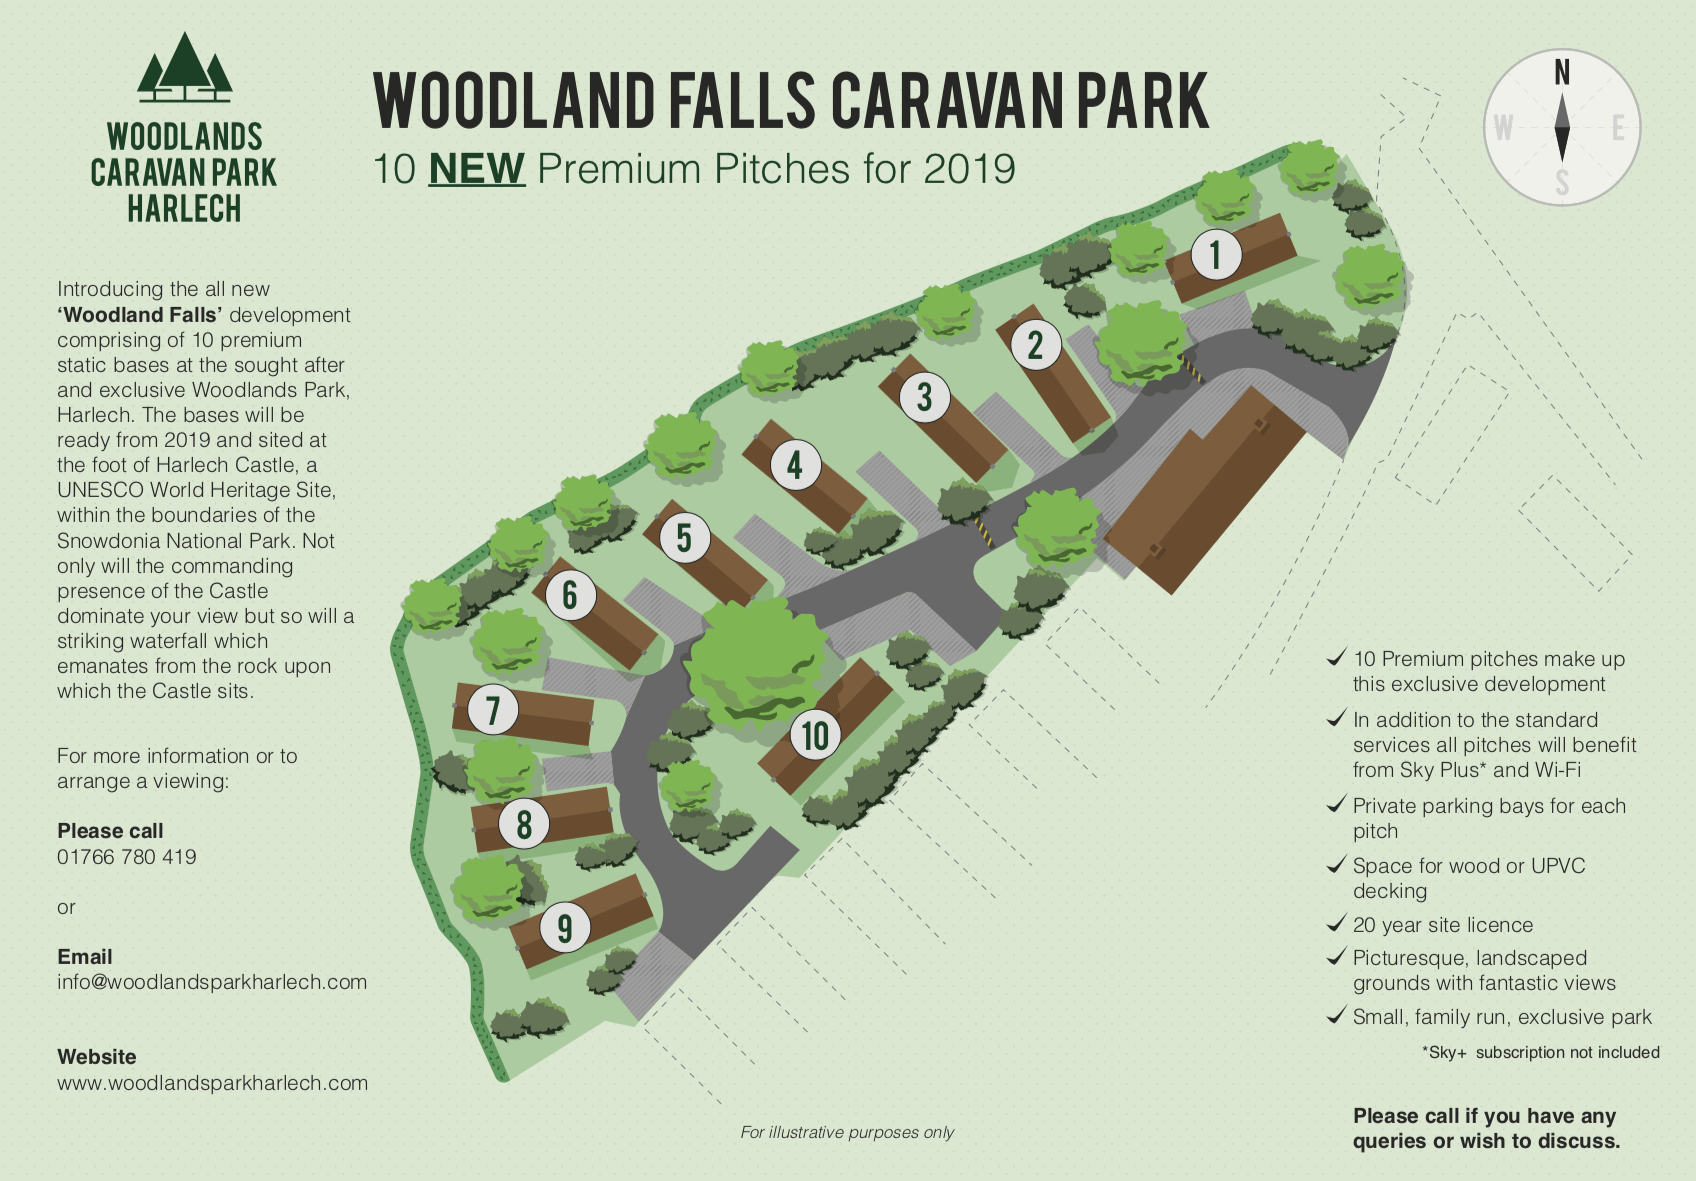 caravan woodlands our cottages bases holiday new static harlech caravans park pro wp faqs read